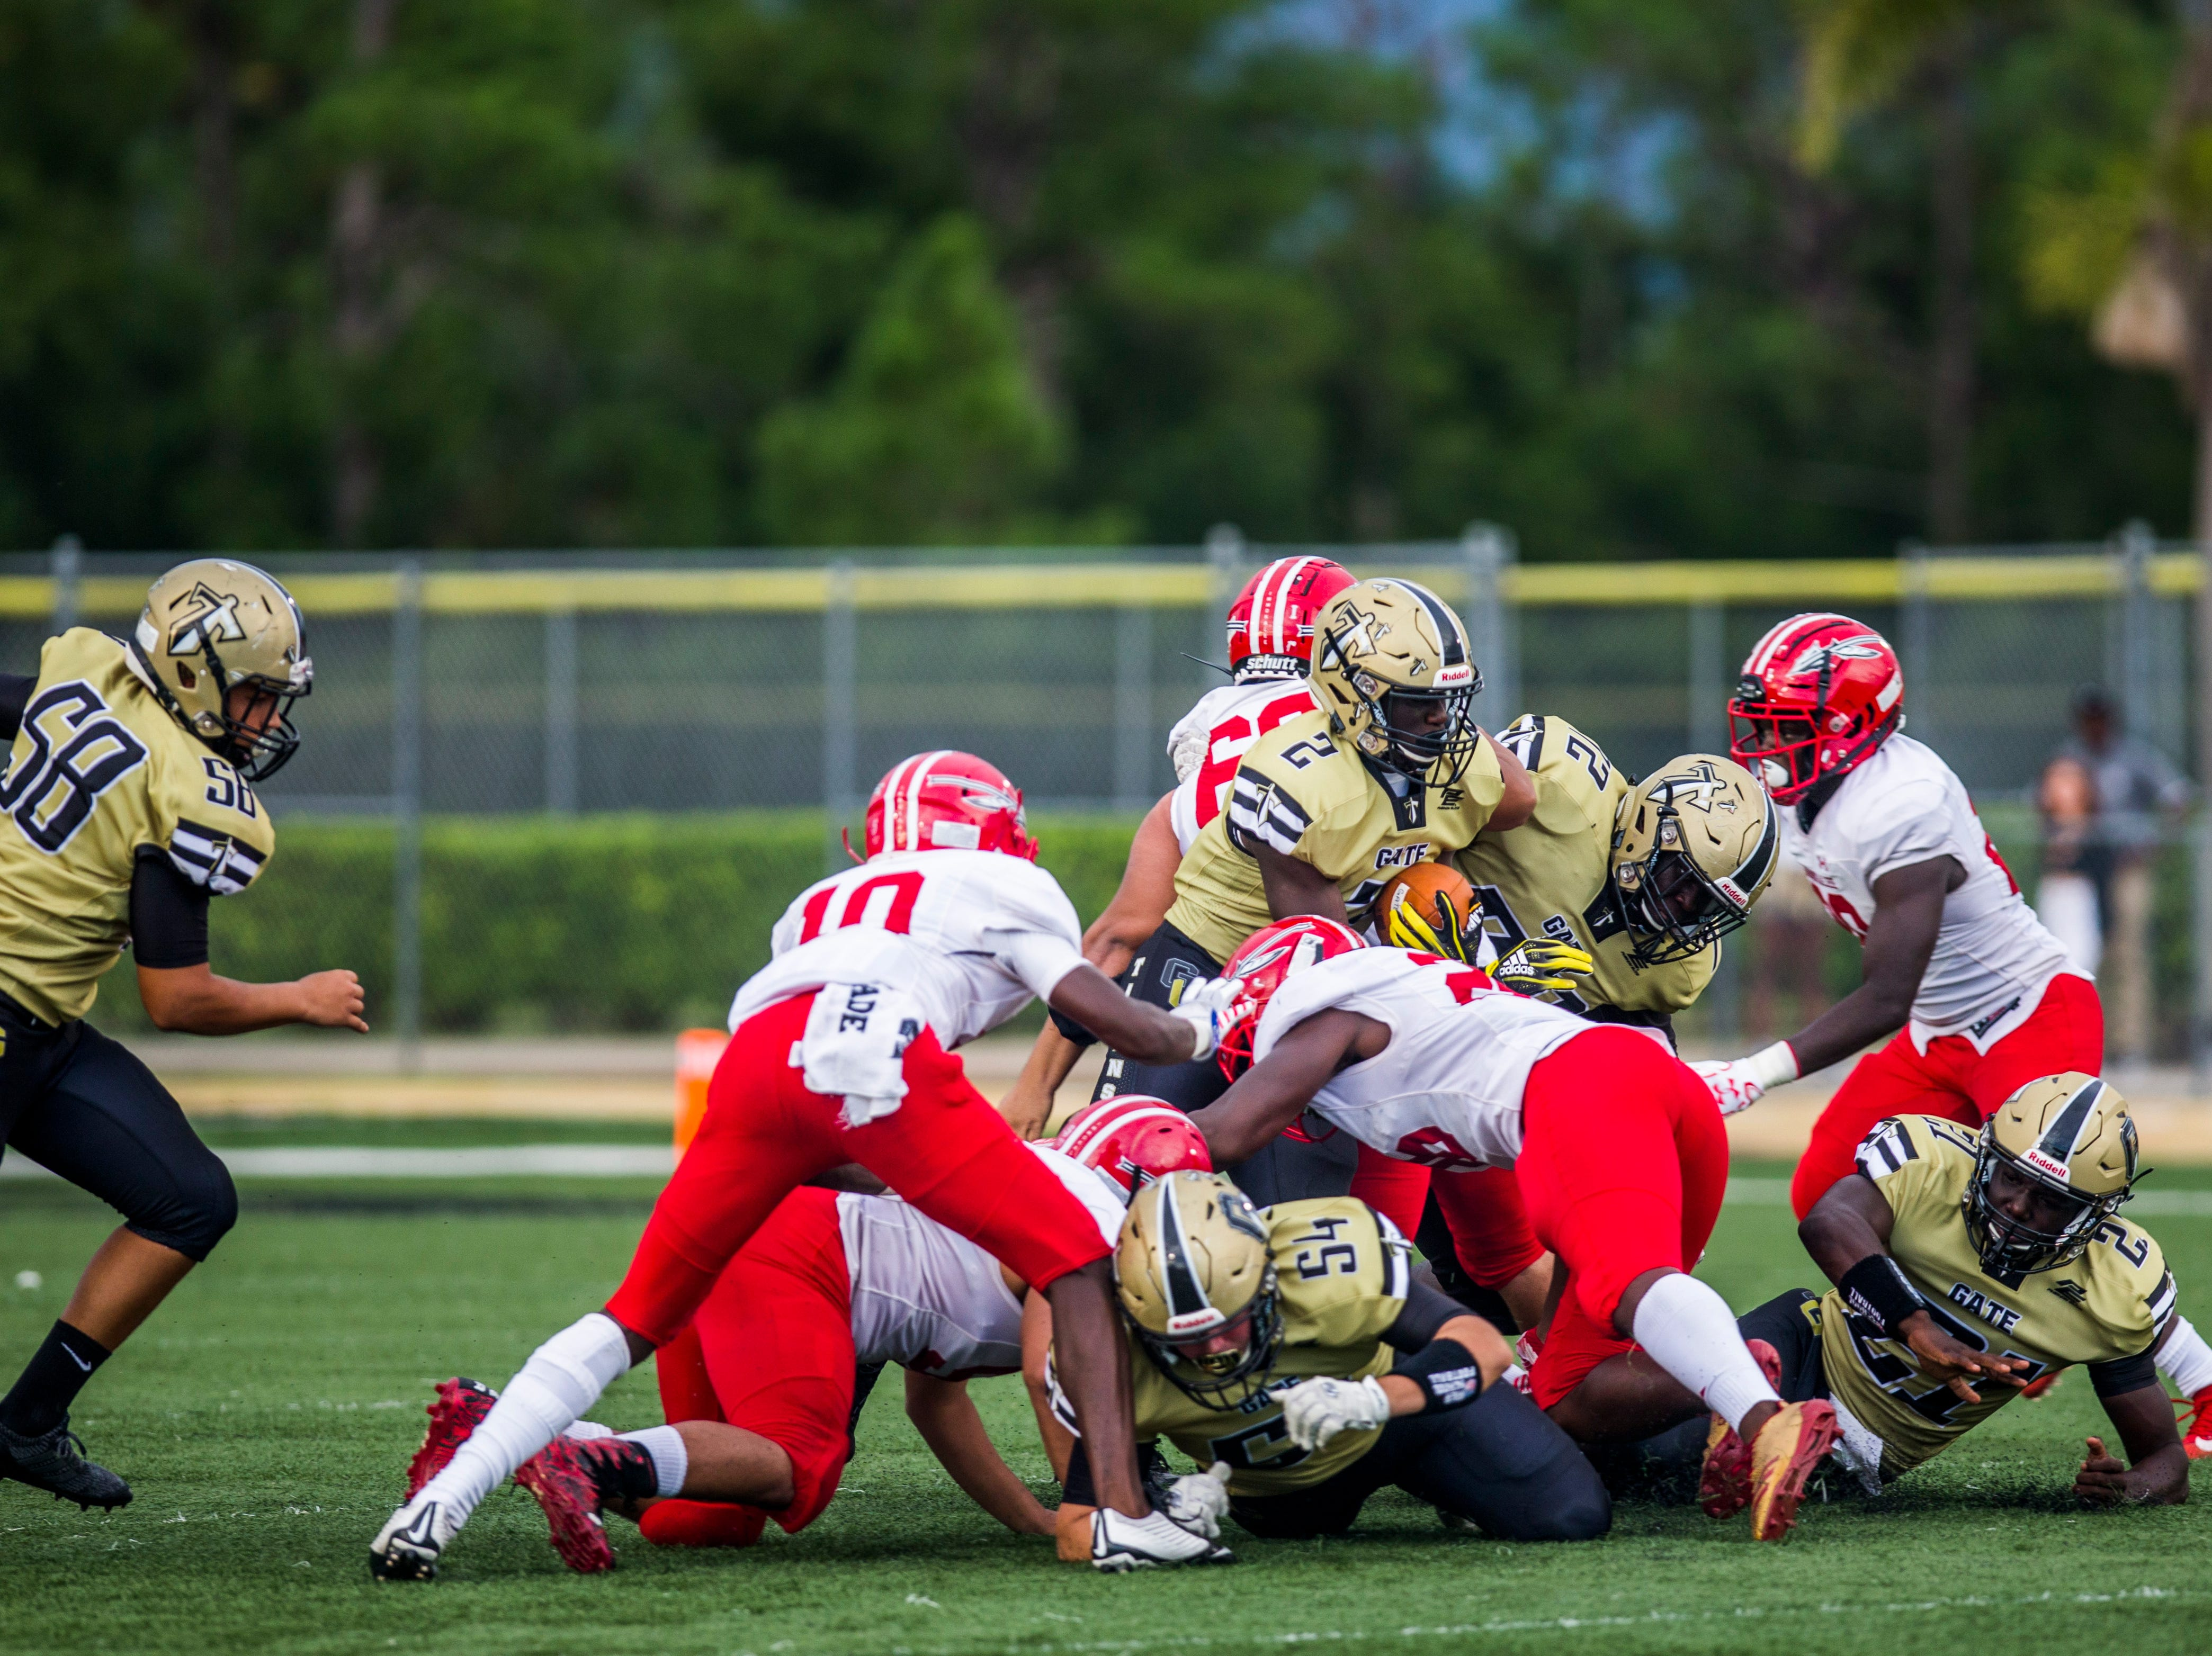 Golden Gate is brought down during the game against Immokalee at Golden Gate High School on Friday, Aug. 24, 2018.